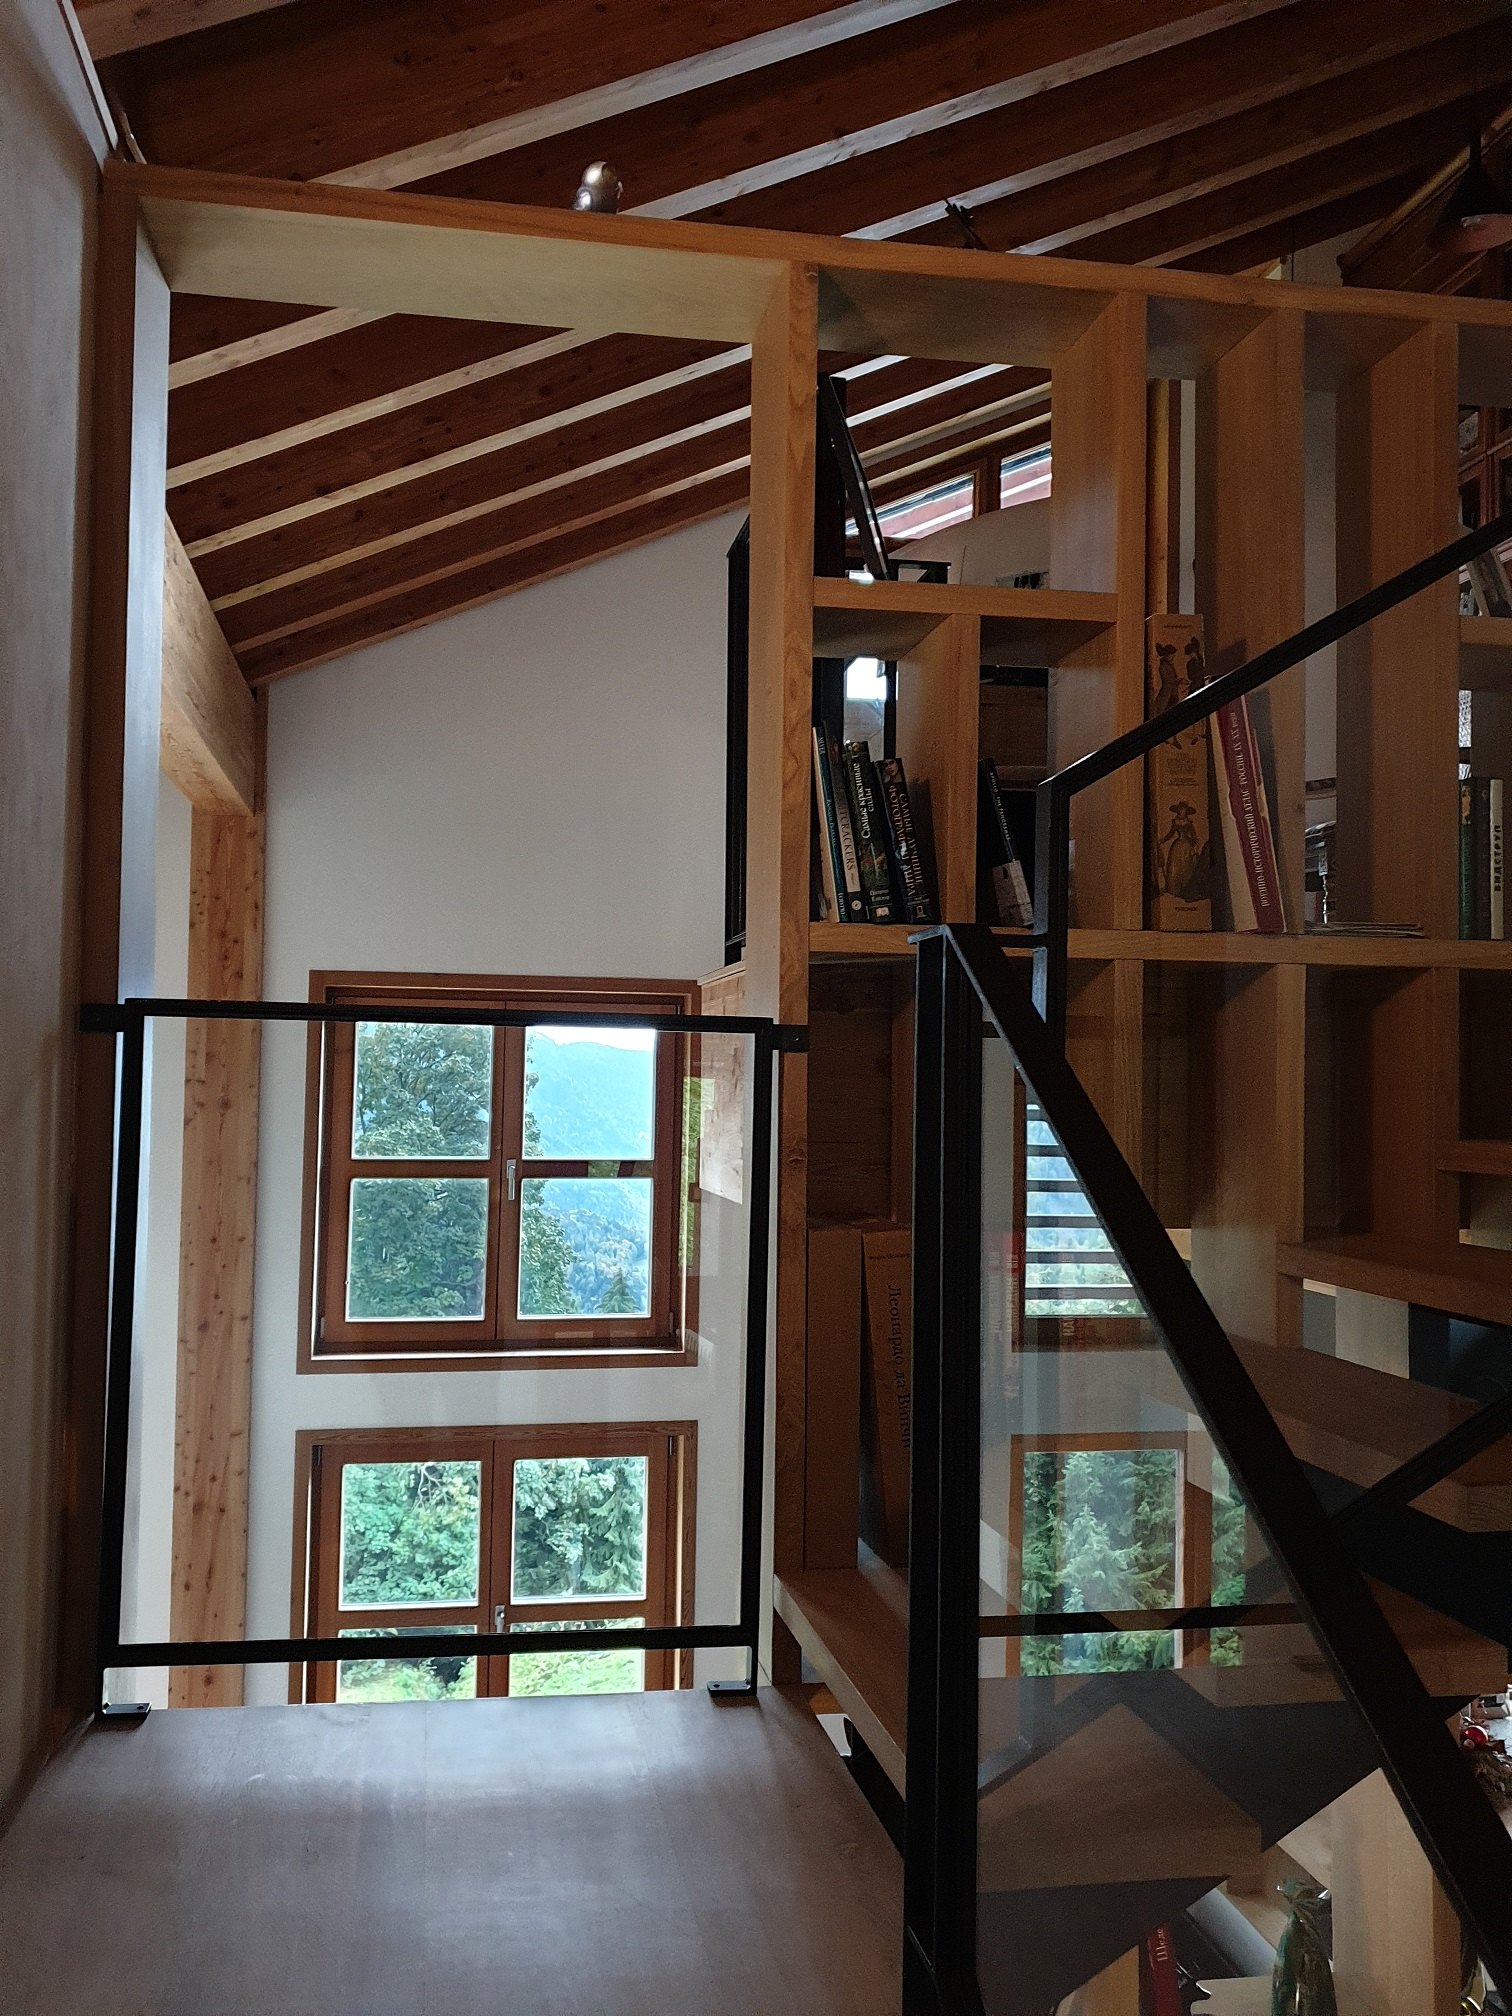 Projet Chalet Villars-sur-Ollon - Stairs and libraries